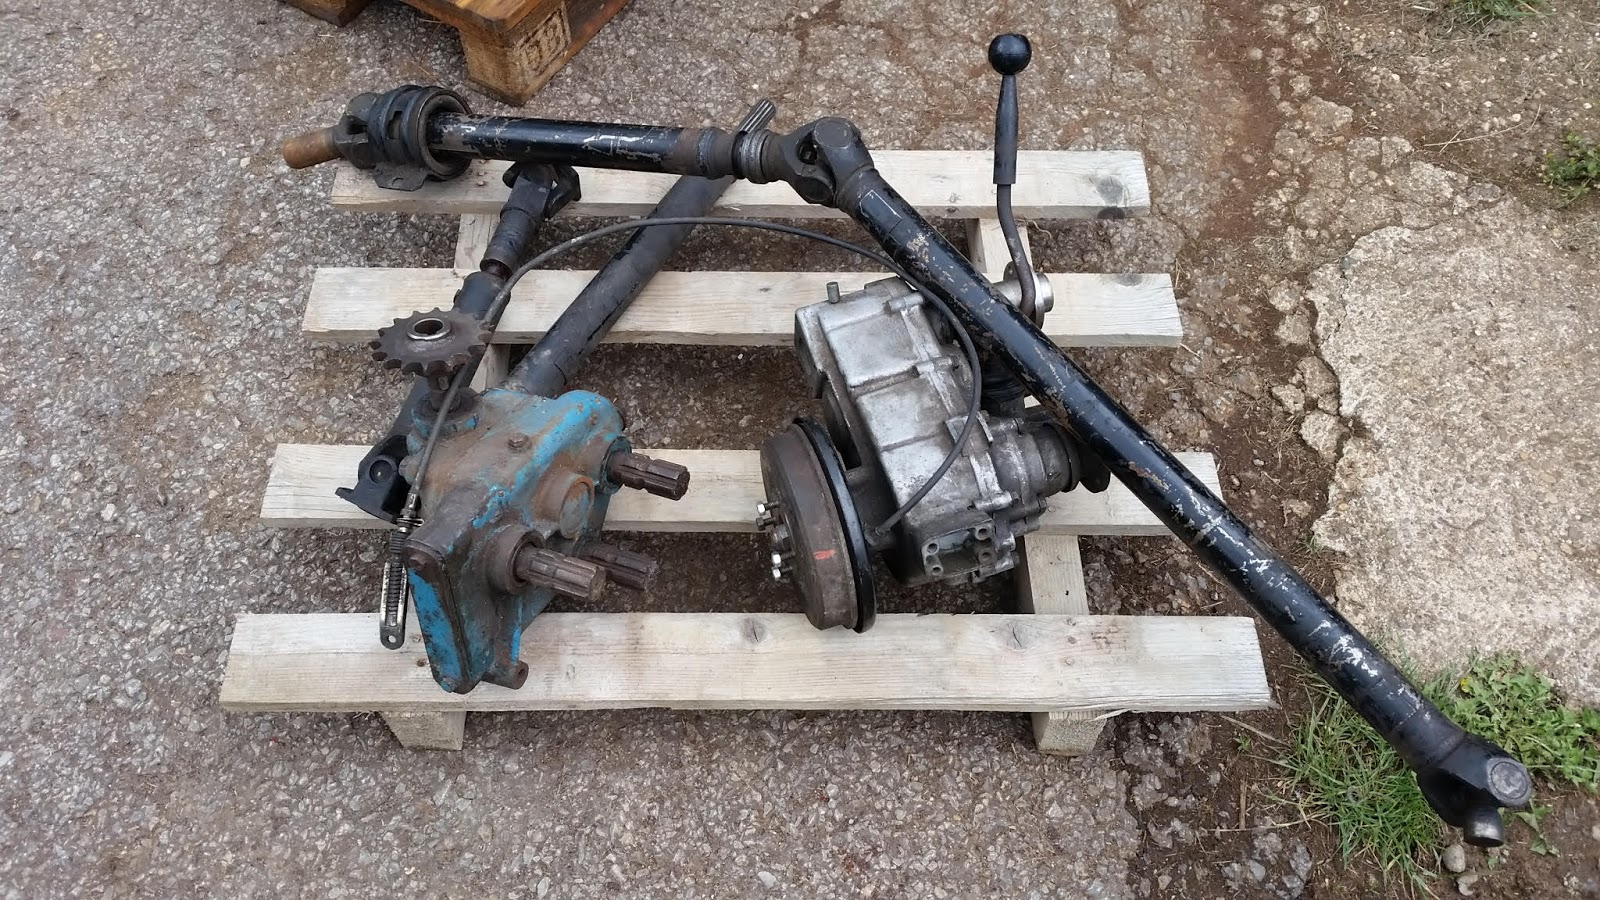 Tractor Pulling News Pullingworld Com Garden Puller Sled For Sale